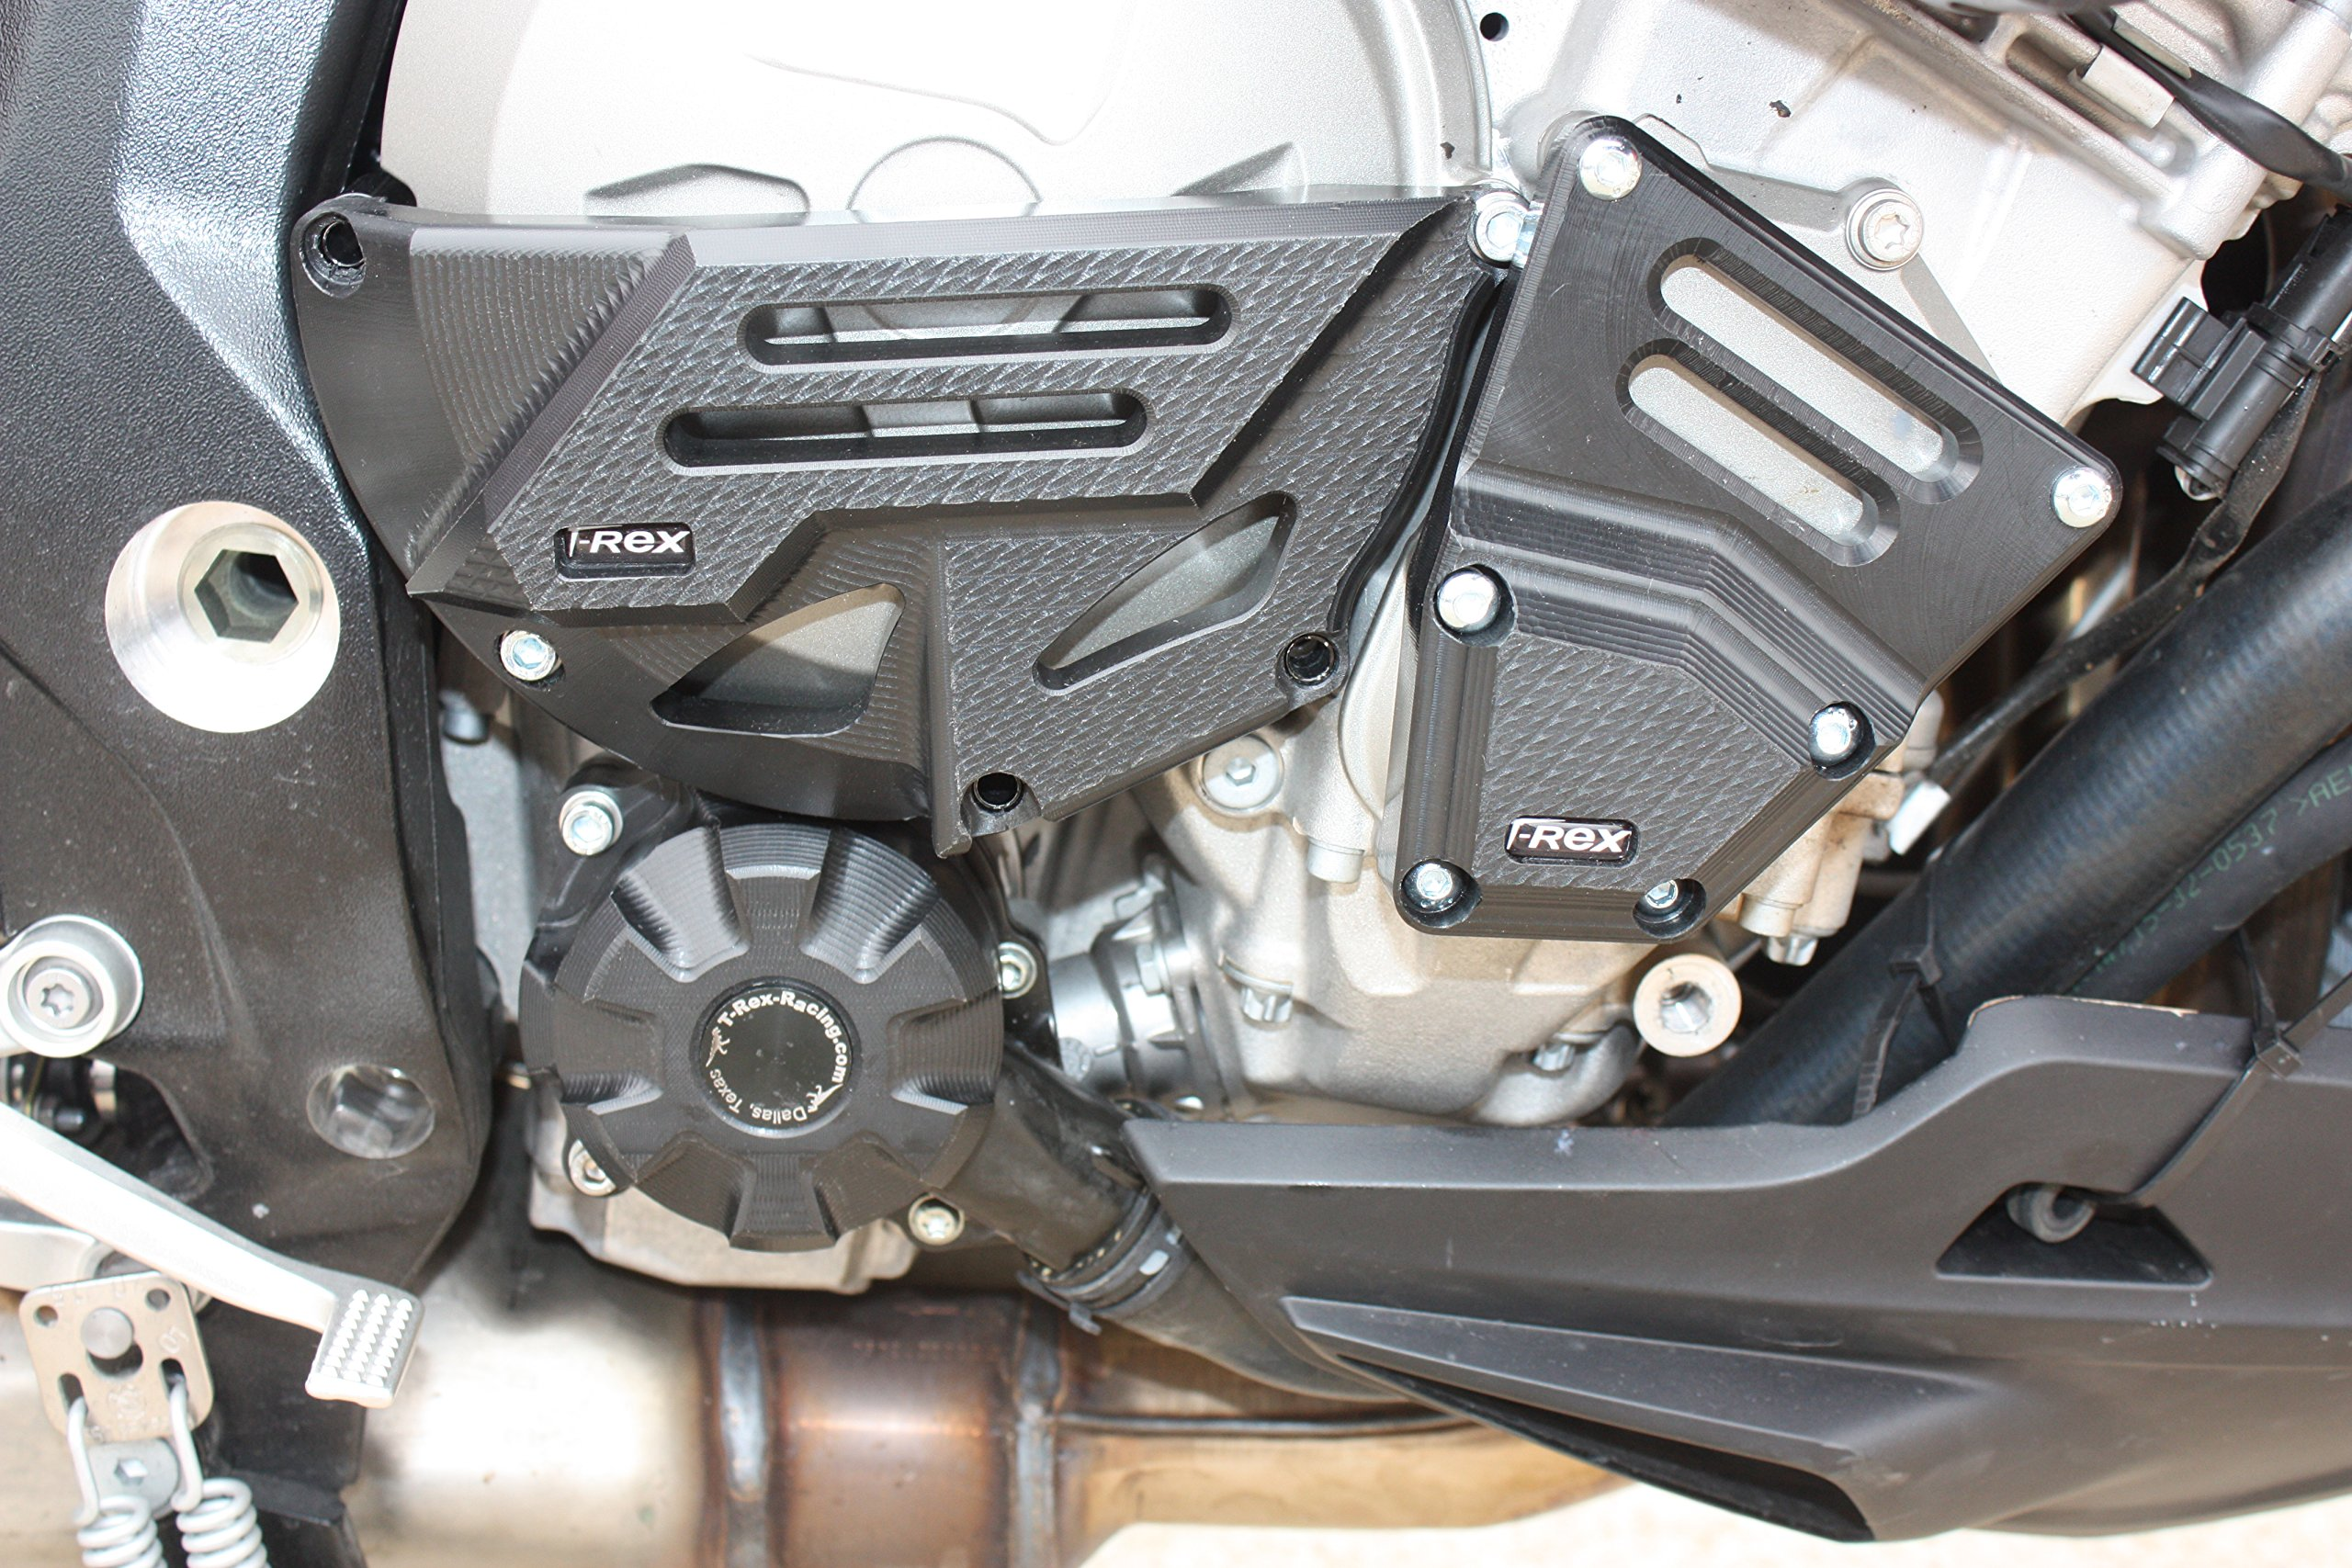 T-Rex Racing 2015 - 2017 BMW S1000XR Engine Stator Pump Case Covers by T-Rex Racing (Image #6)